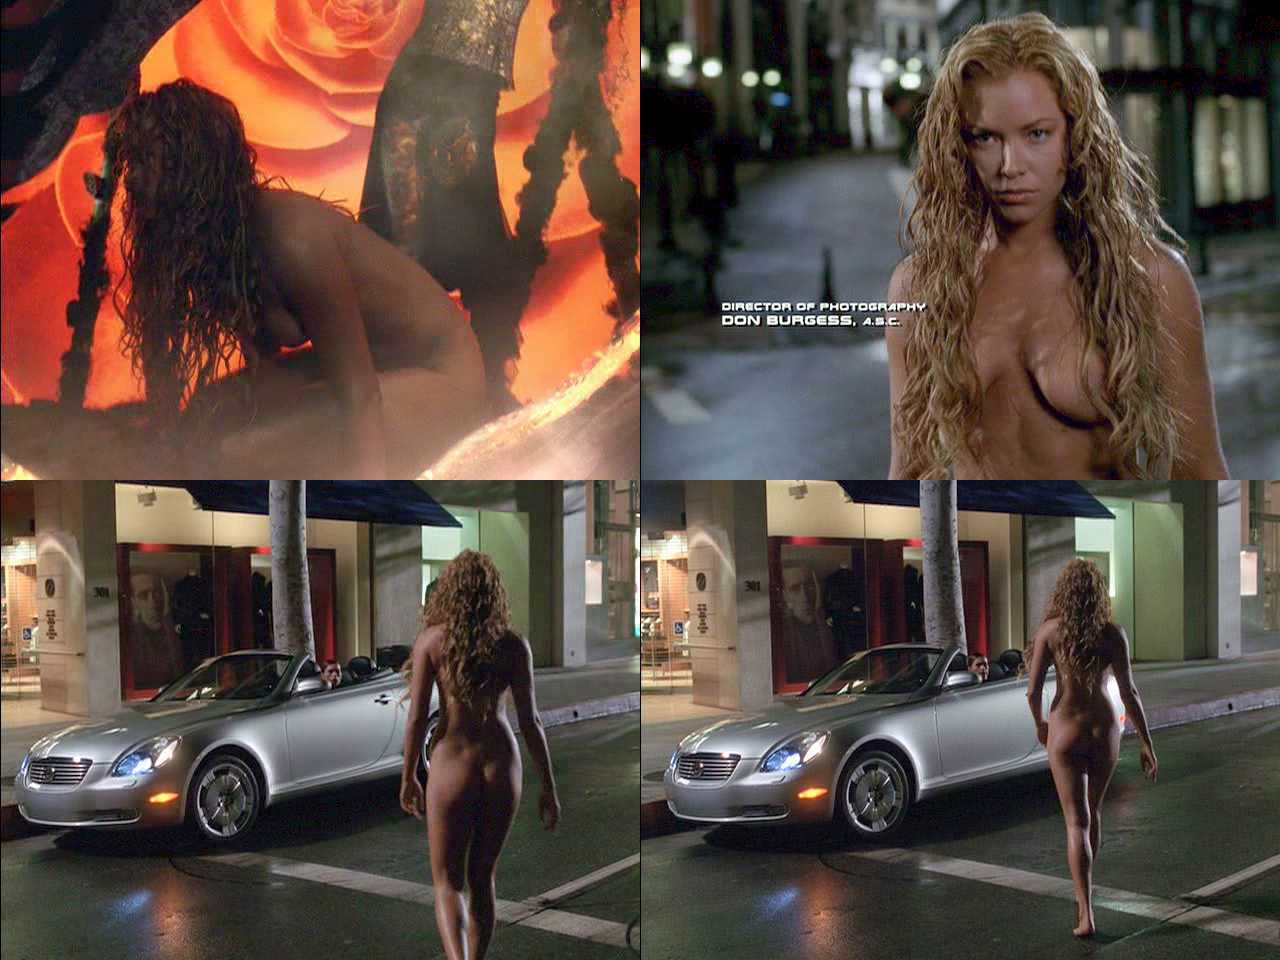 Delia sheppard nude topless christine lunde and others nude too etc